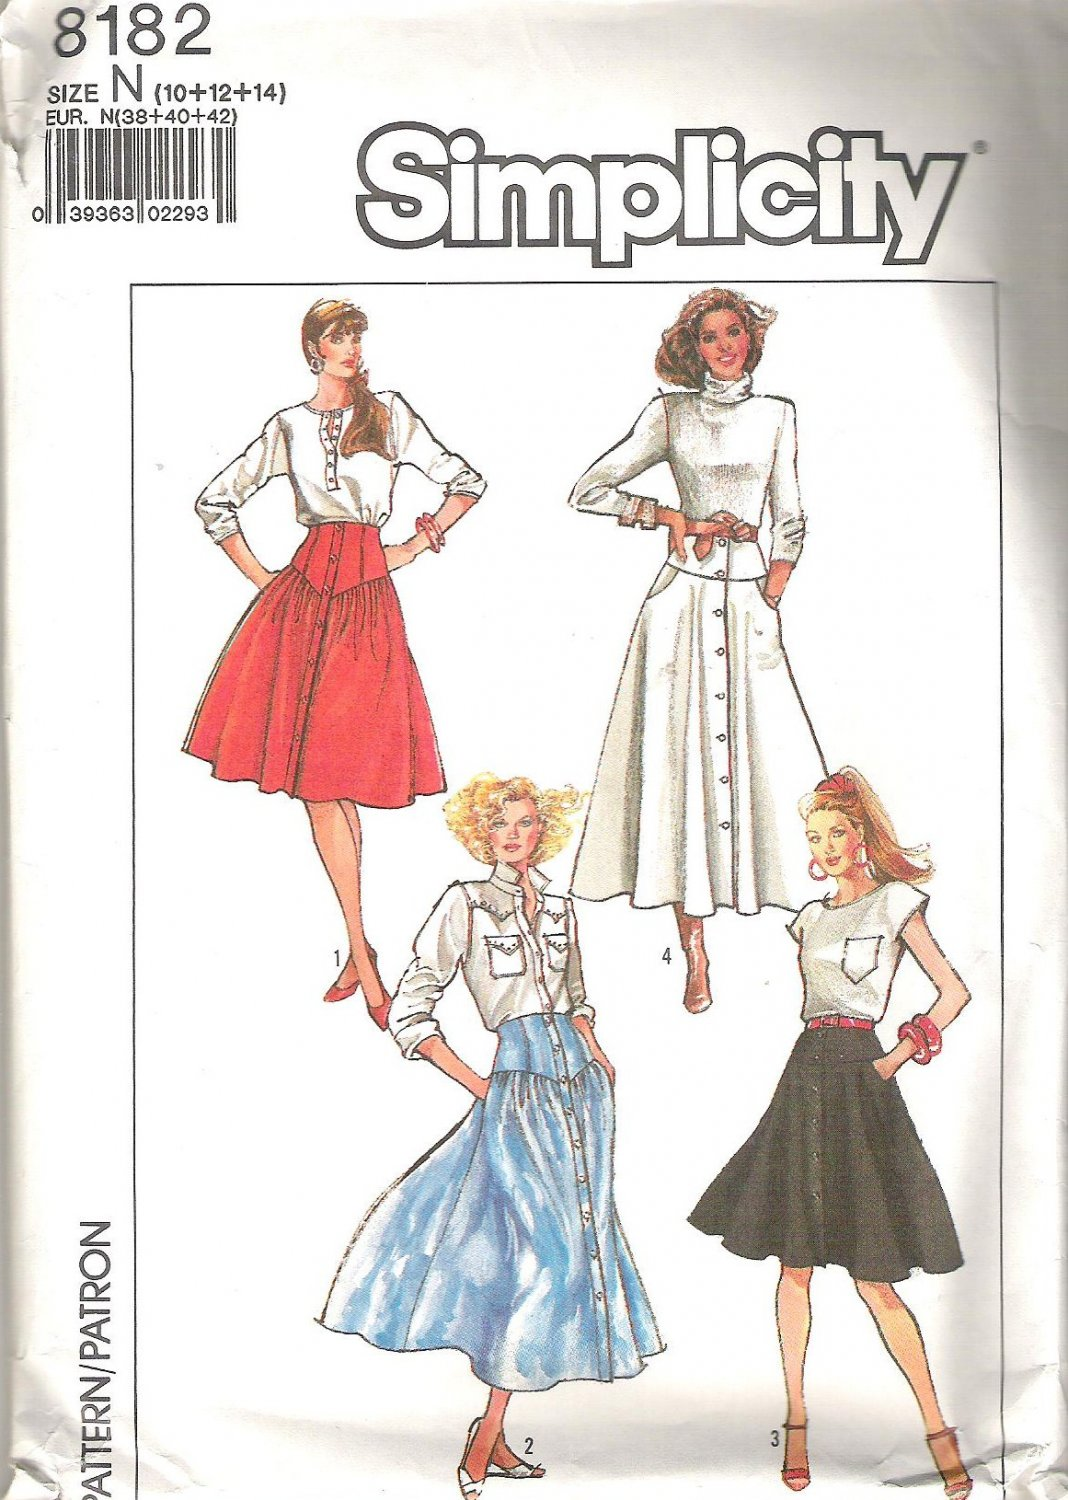 1987 Simplicity 8182 Pattern Button Front Skirt with Yoke and Pockets Size 10-14 Partial Cut